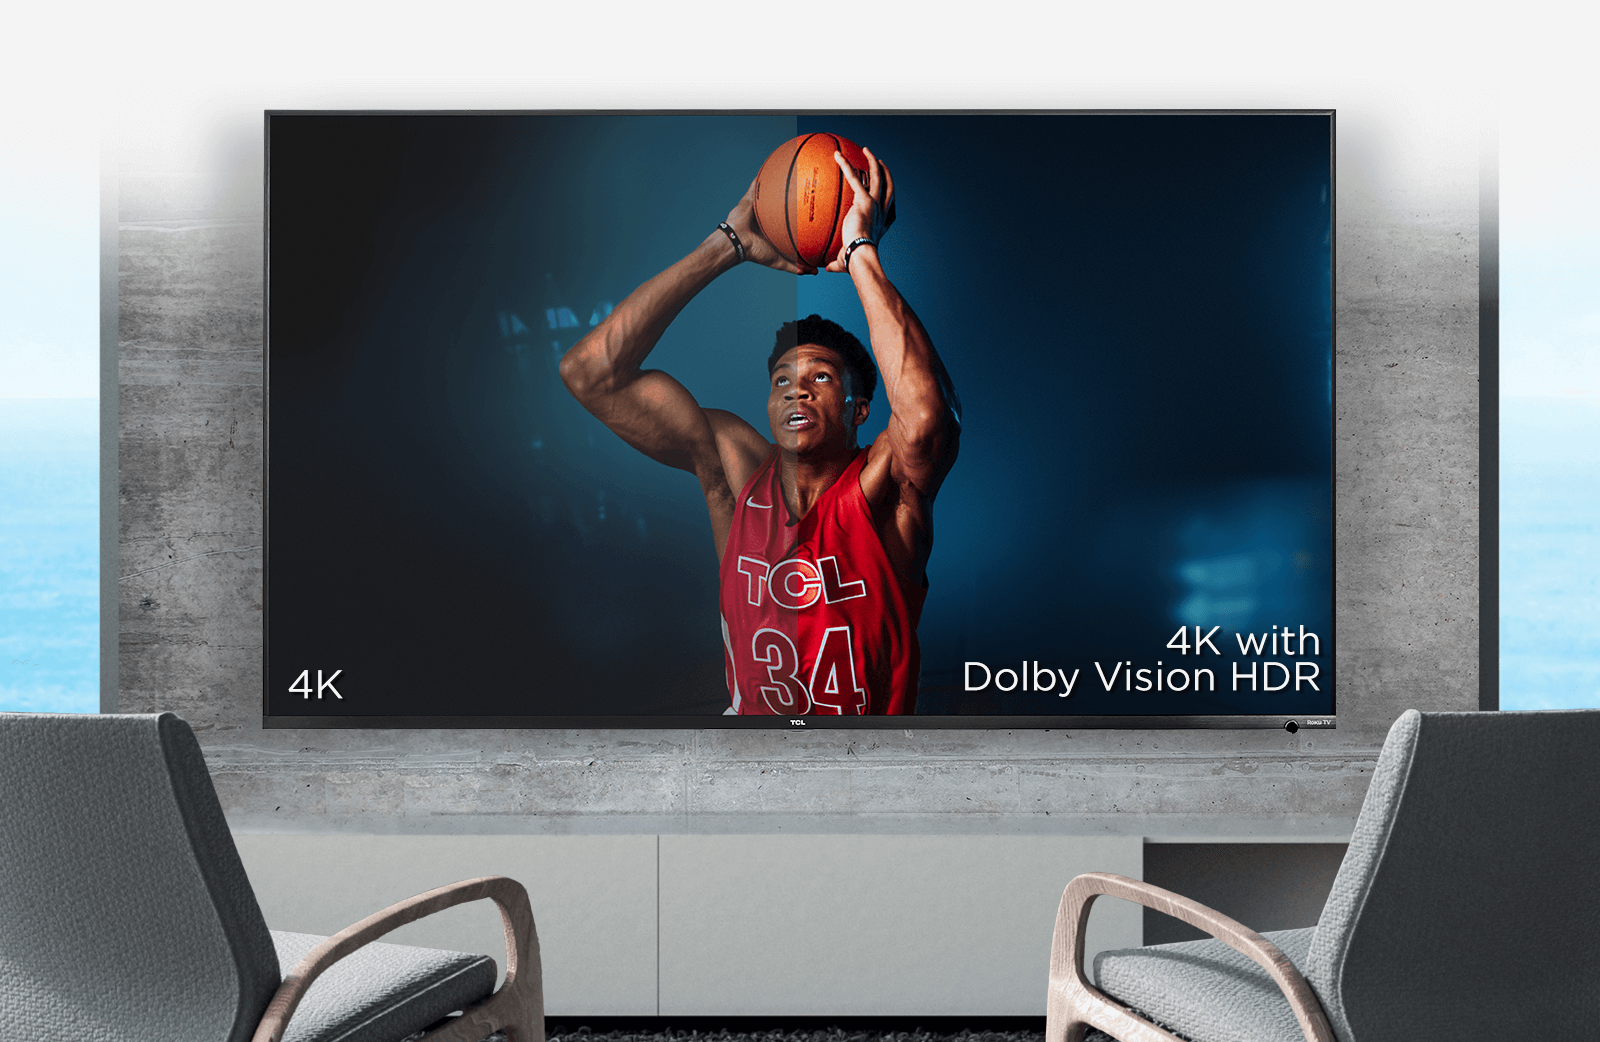 TCL Giannis Dolby Vision